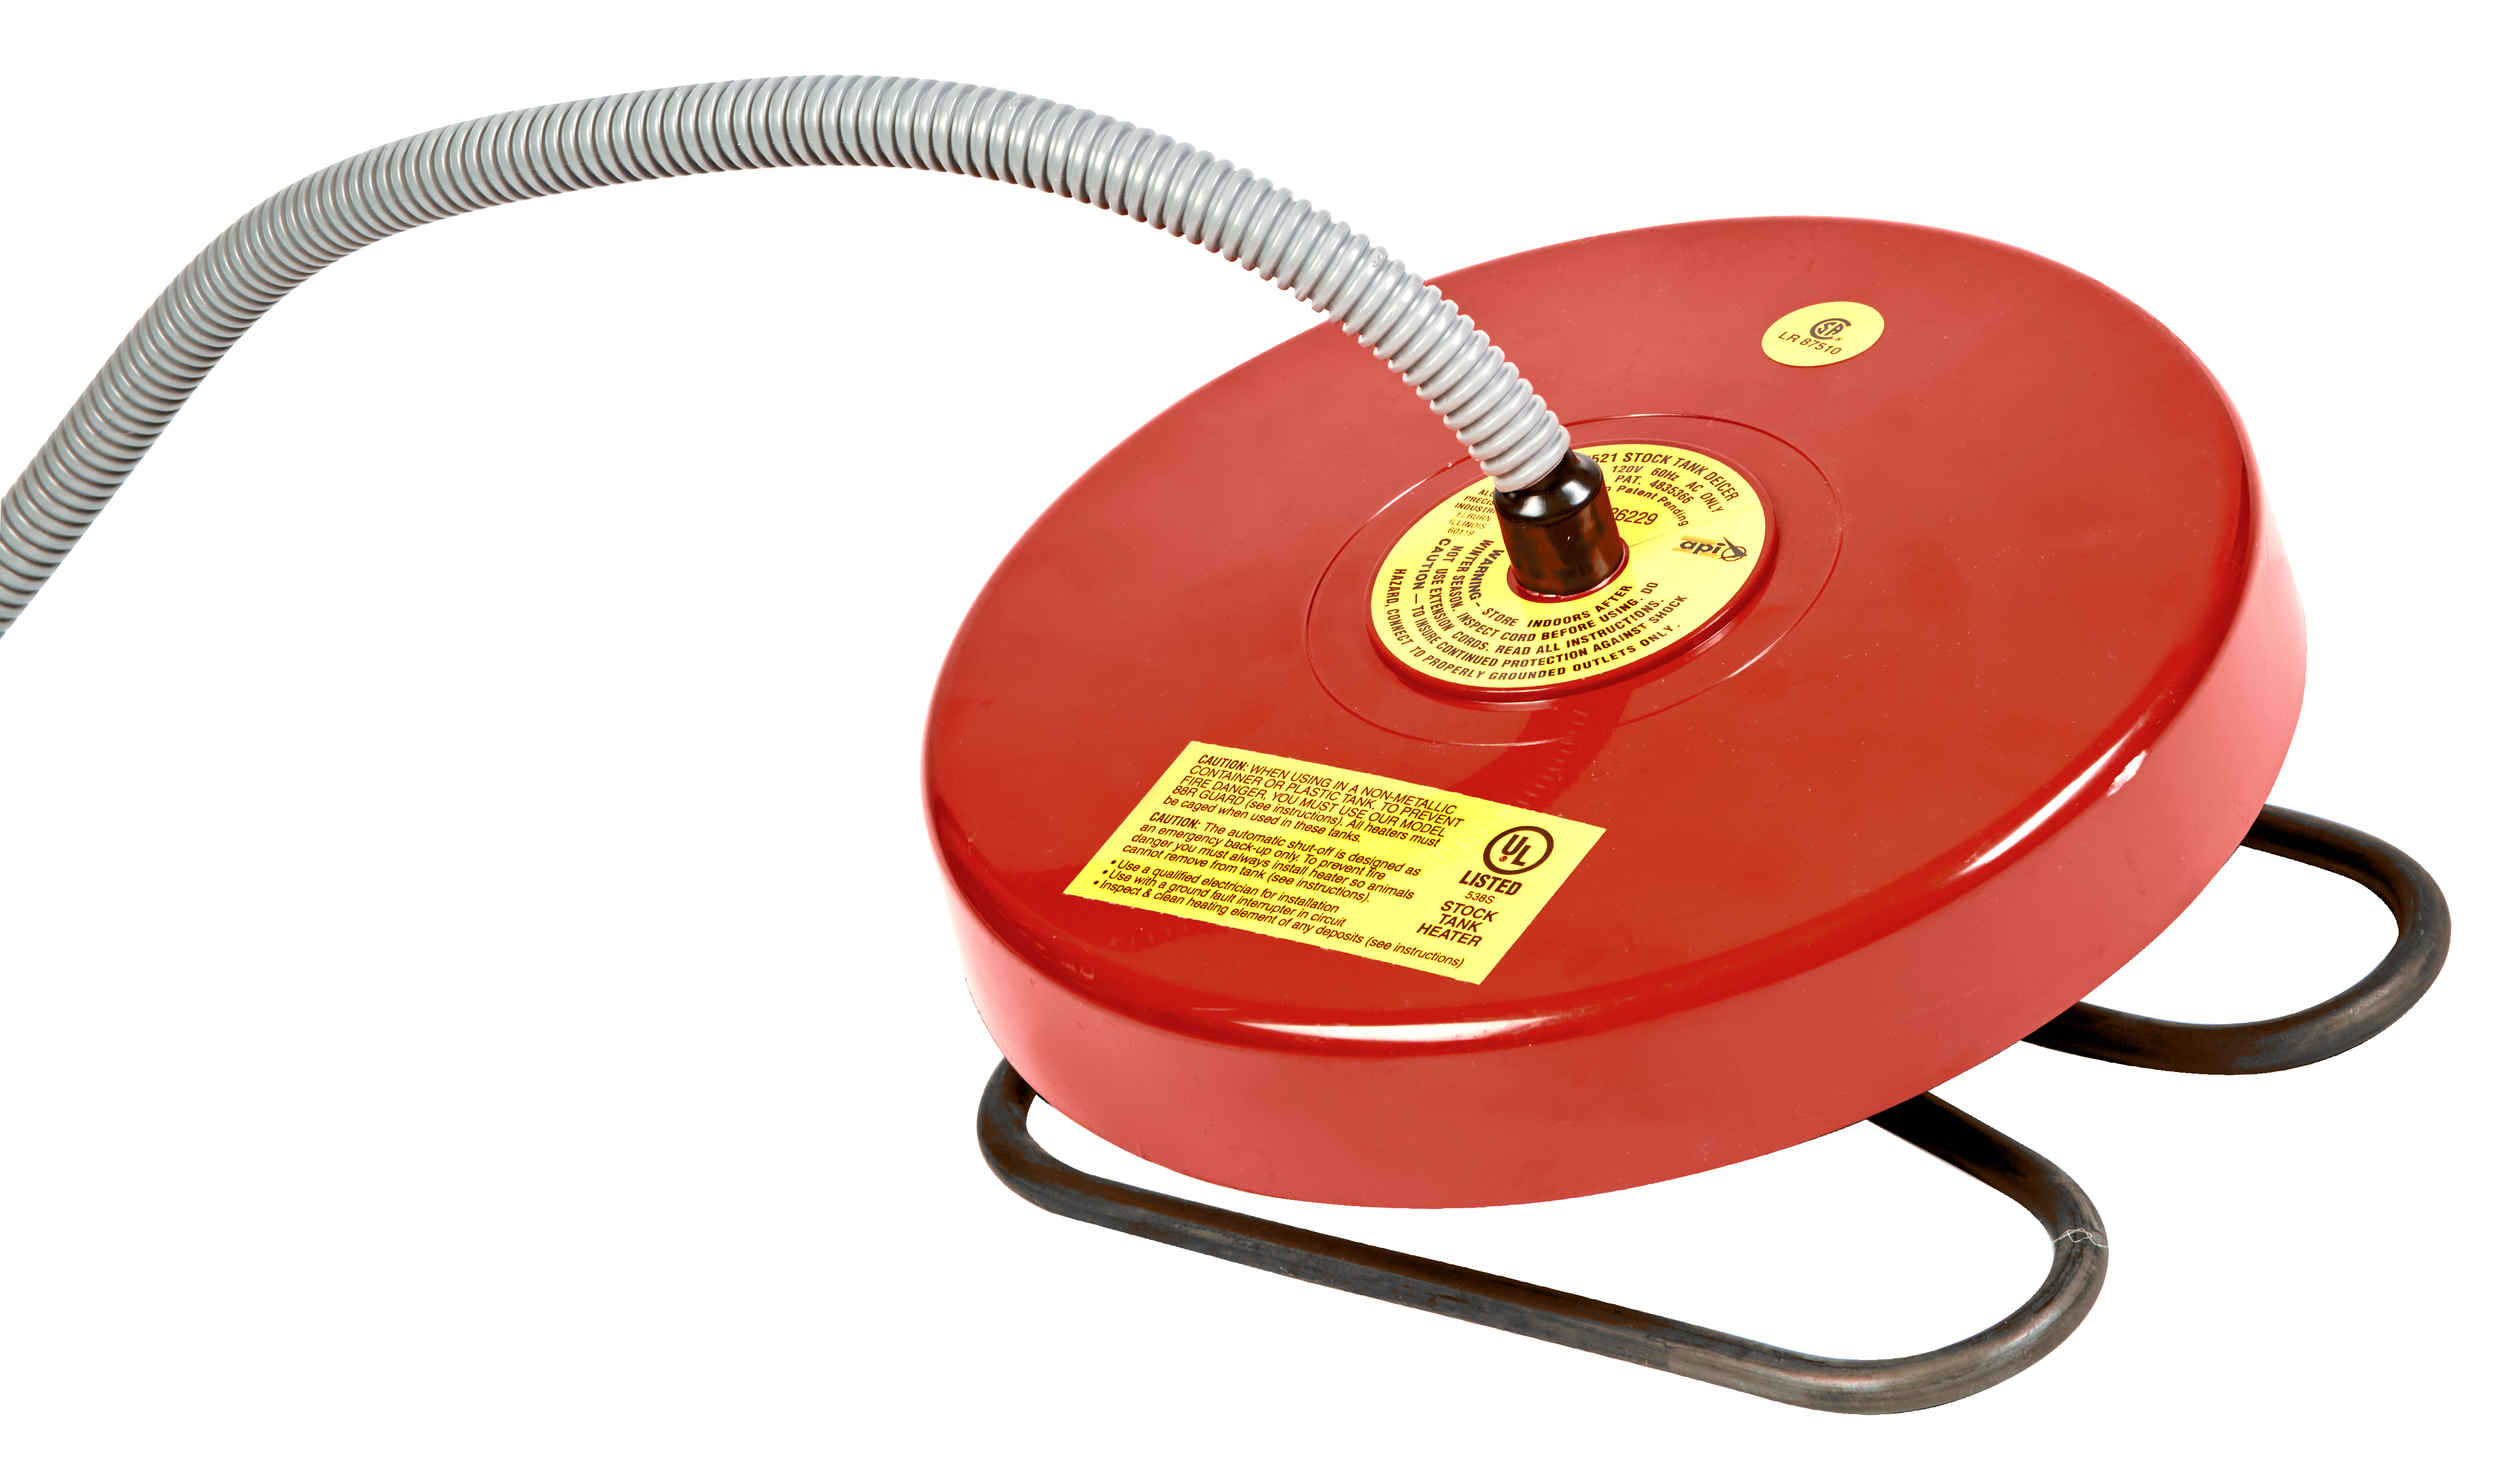 Allied precision ind 7521 1500w floating de icer walmart sciox Choice Image